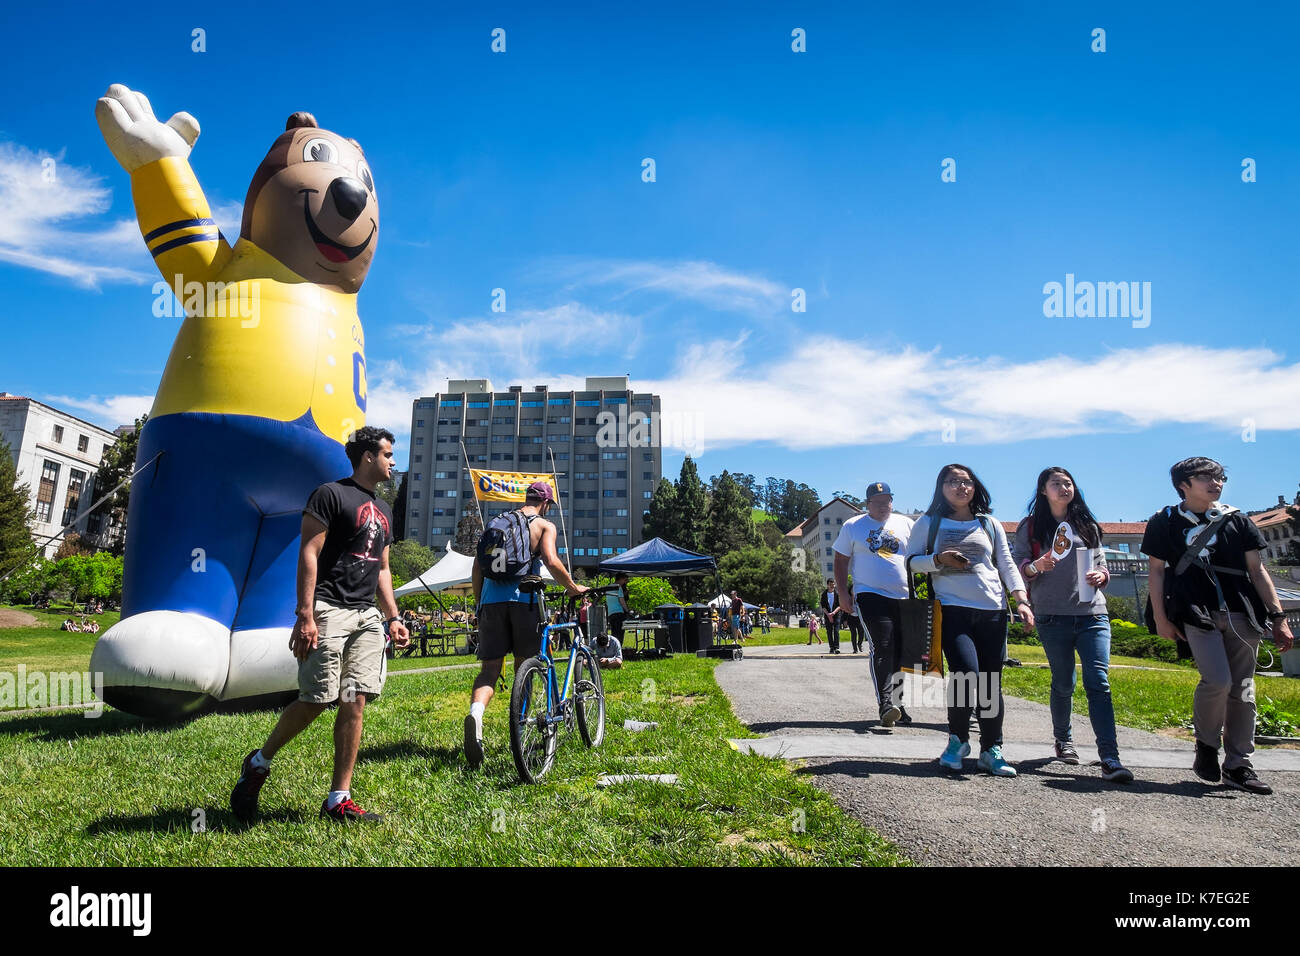 BERKELEY, CA- Apr 16, 2016: University of California Berkeley huge inflatable mascot Oski the Bear greets newly admitted students on Cal Day. - Stock Image